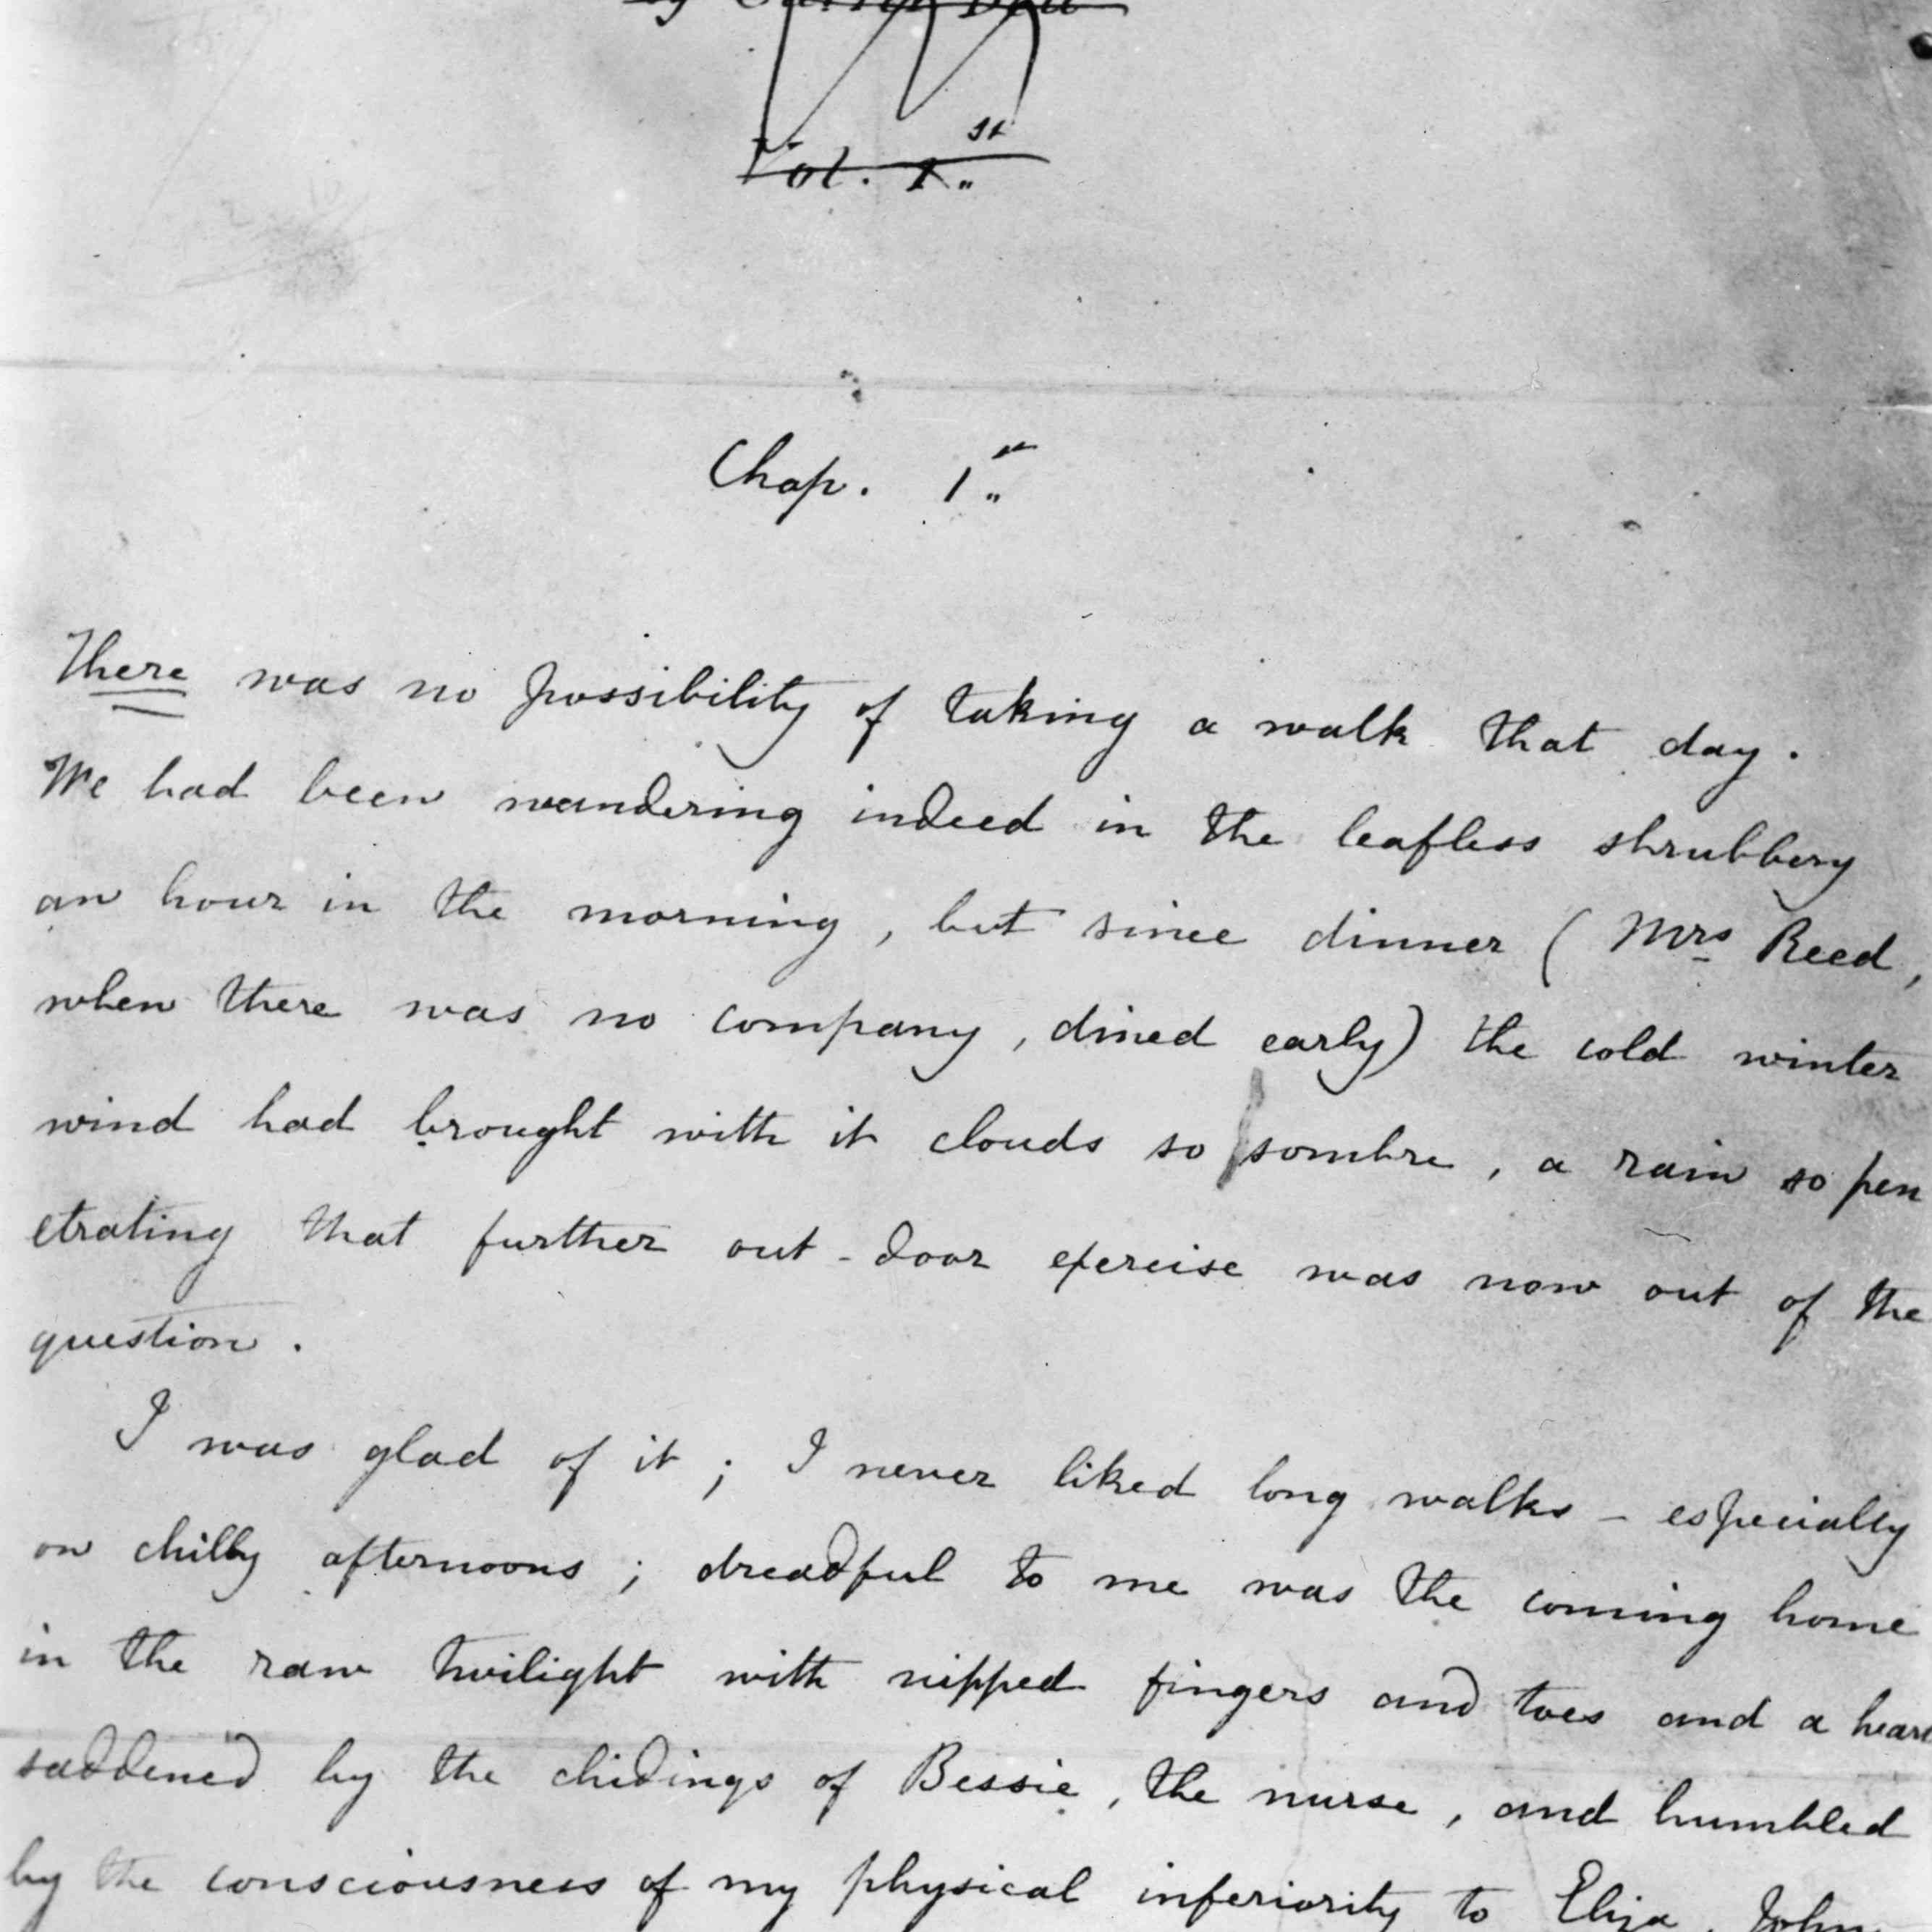 The first page of the 'Jane Eyre' manuscript